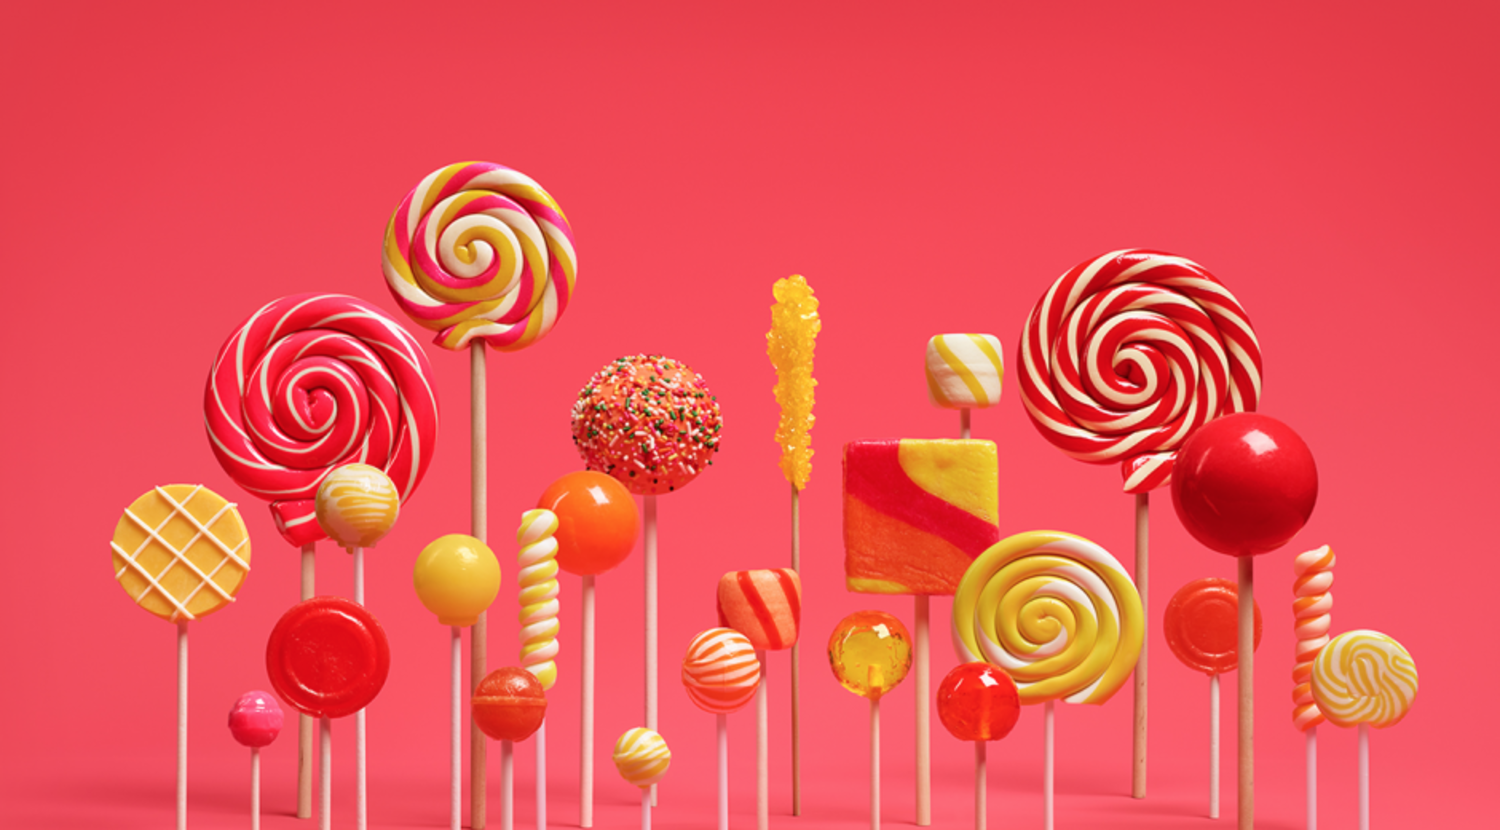 Android Lollipop Is Finally Coming To Your Handset